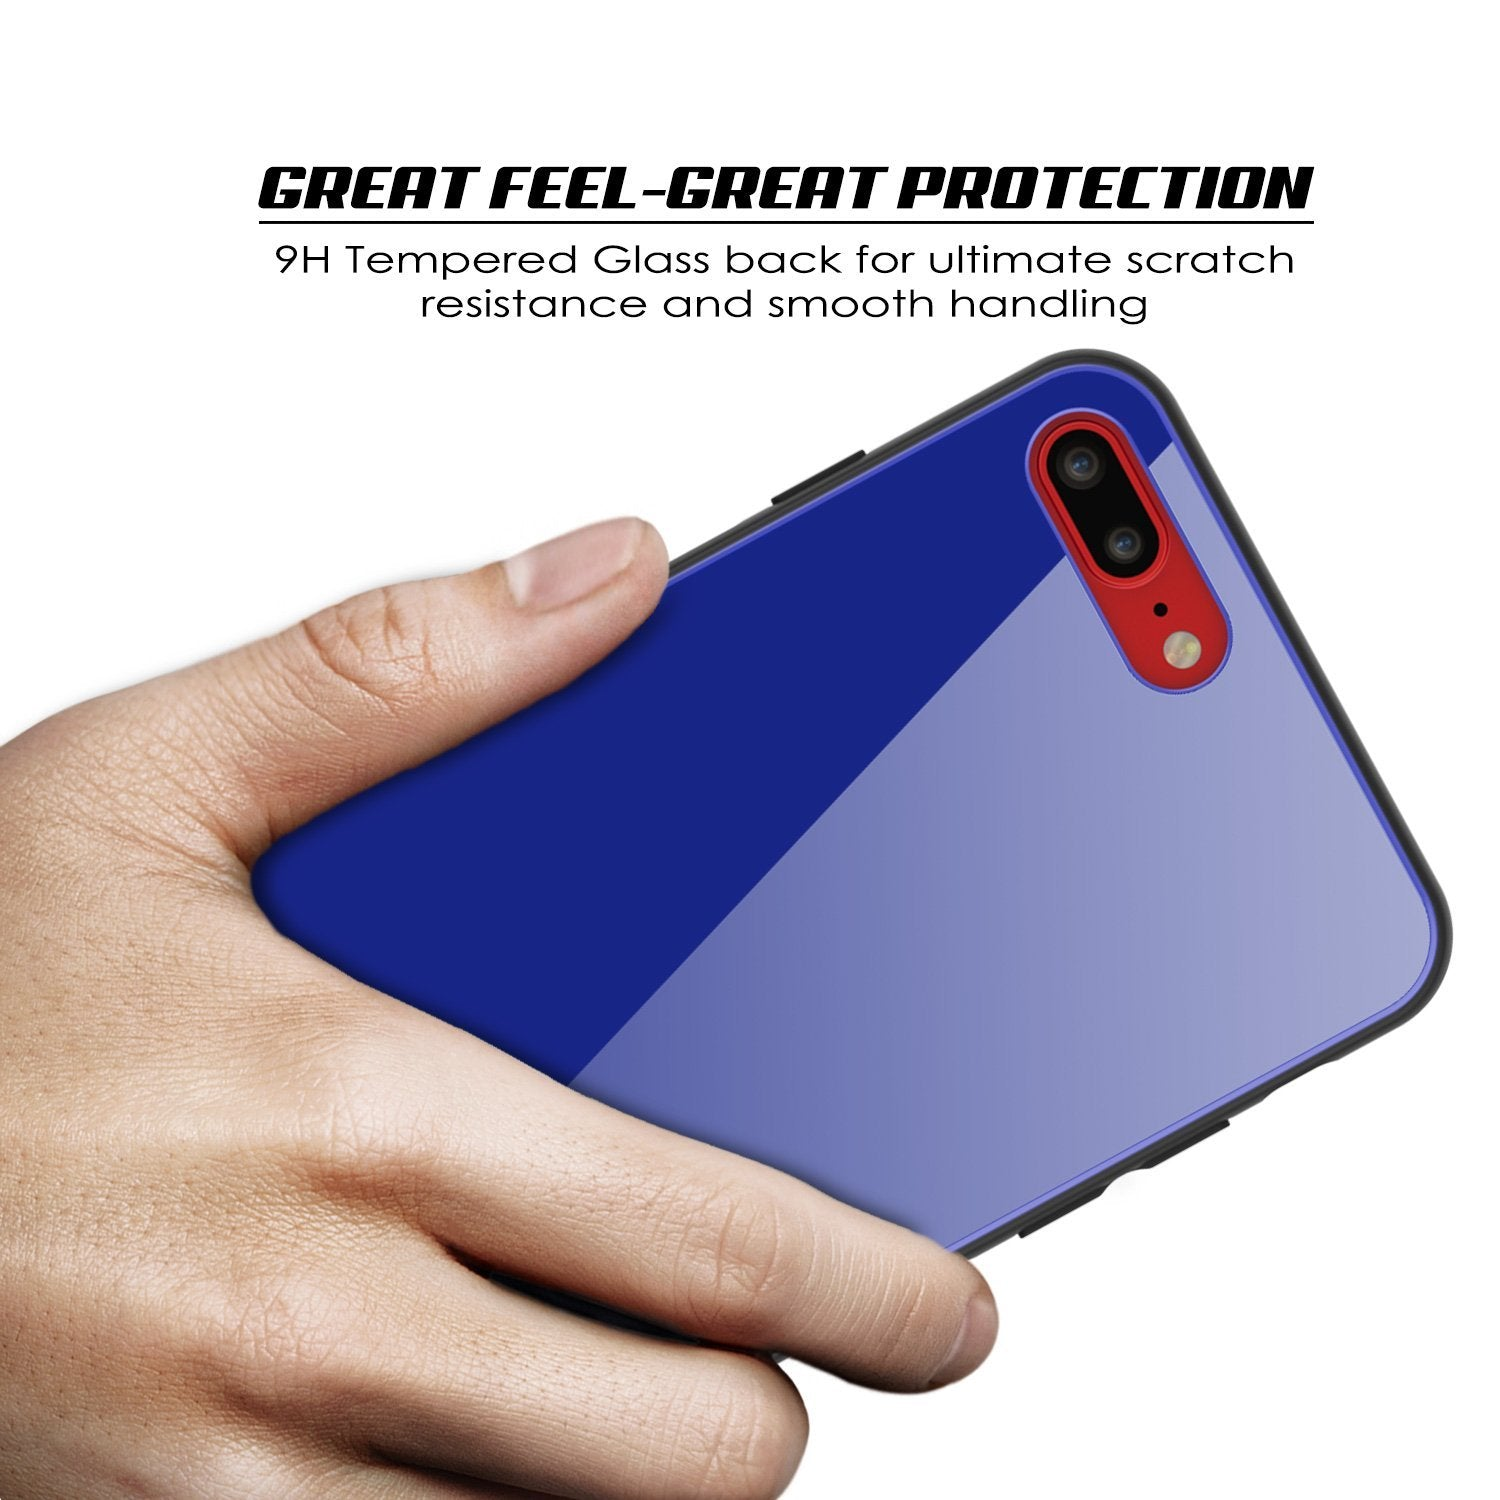 iPhone 8 PLUS Case, Punkcase GlassShield Ultra Thin Protective 9H Full Body Tempered Glass Cover W/ Drop Protection & Non Slip Grip for Apple iPhone 7 PLUS / Apple iPhone 8 PLUS (Blue)